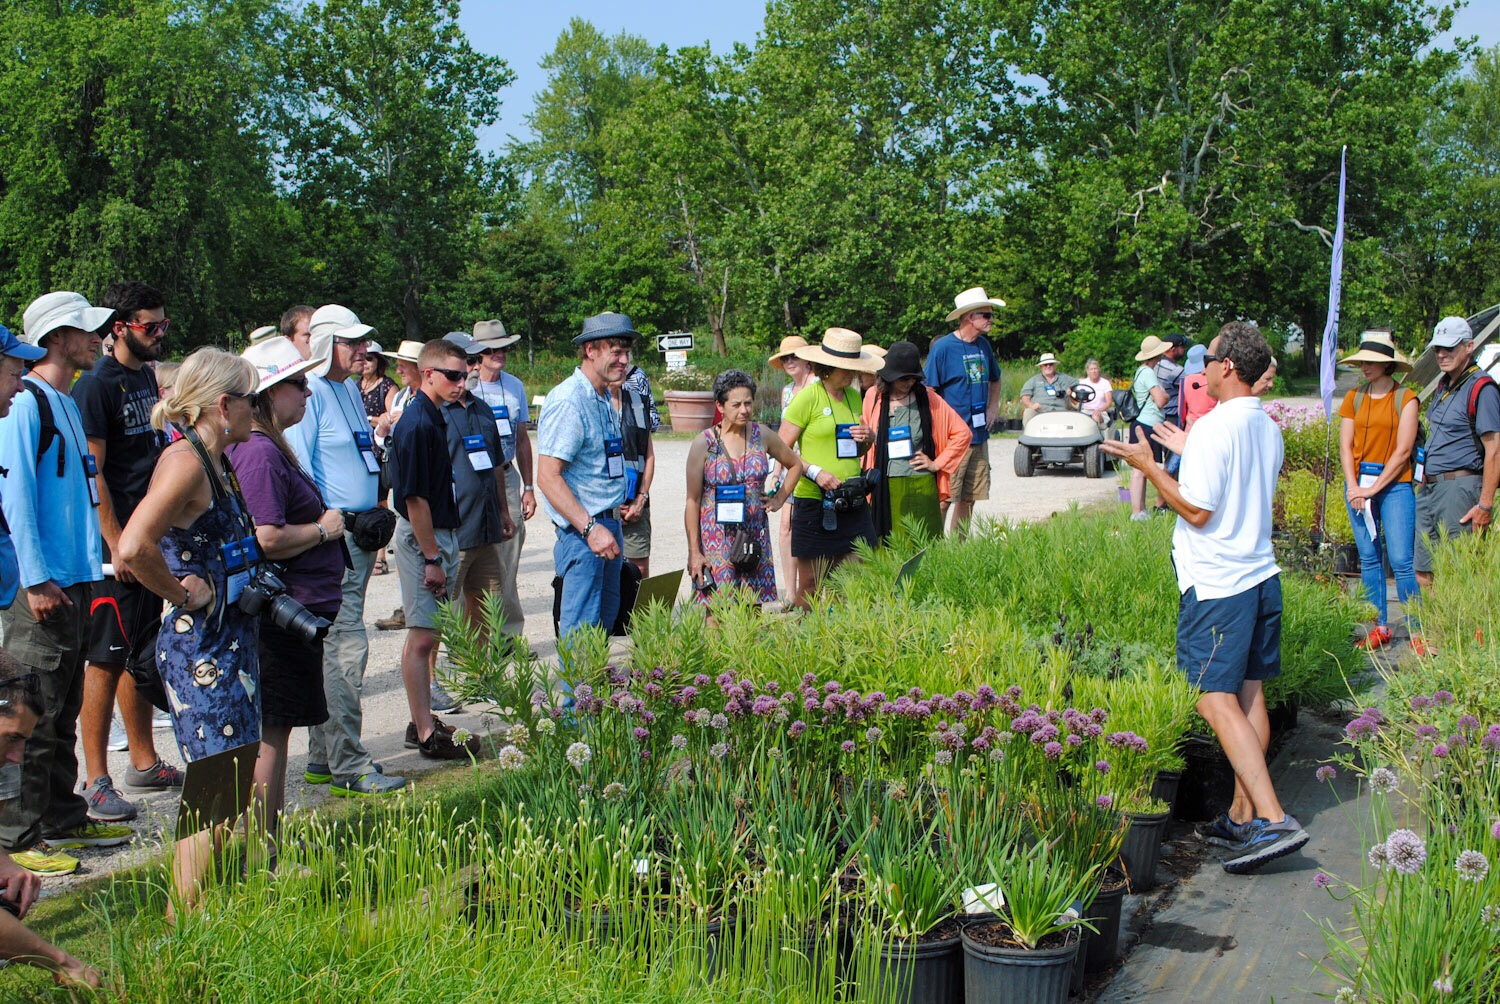 Here Brent shows the PPA group many new plant releases he's developing.